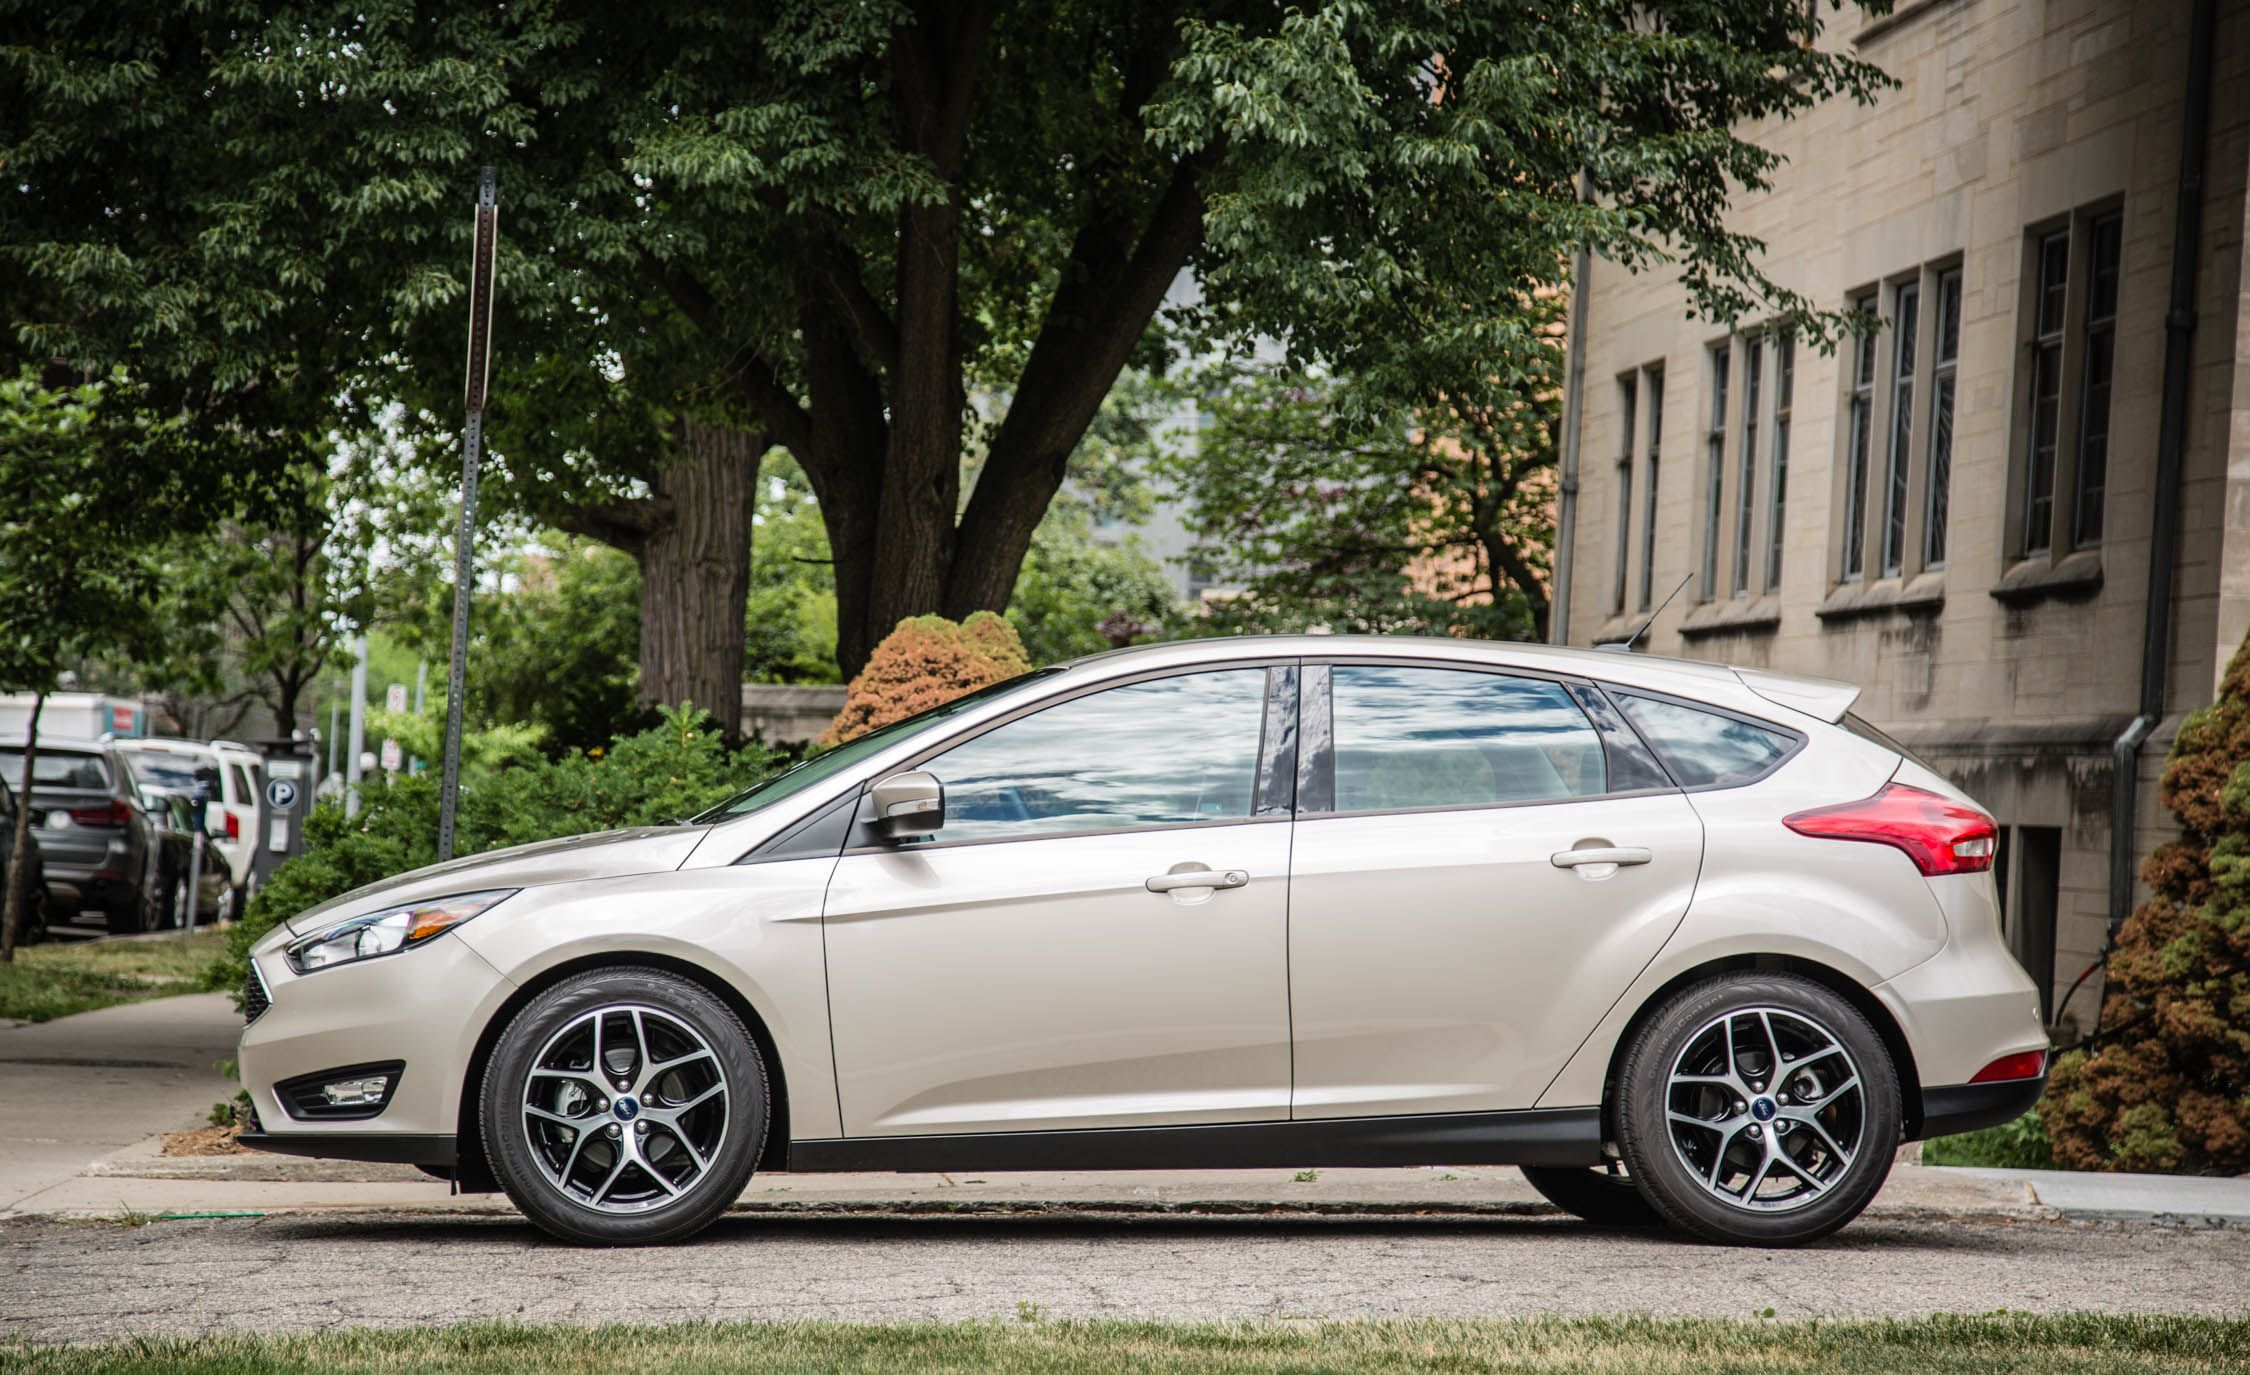 2016 Ford Focus Sedan 1 0 Liter Turbo Automatic Test Review Car And Driver